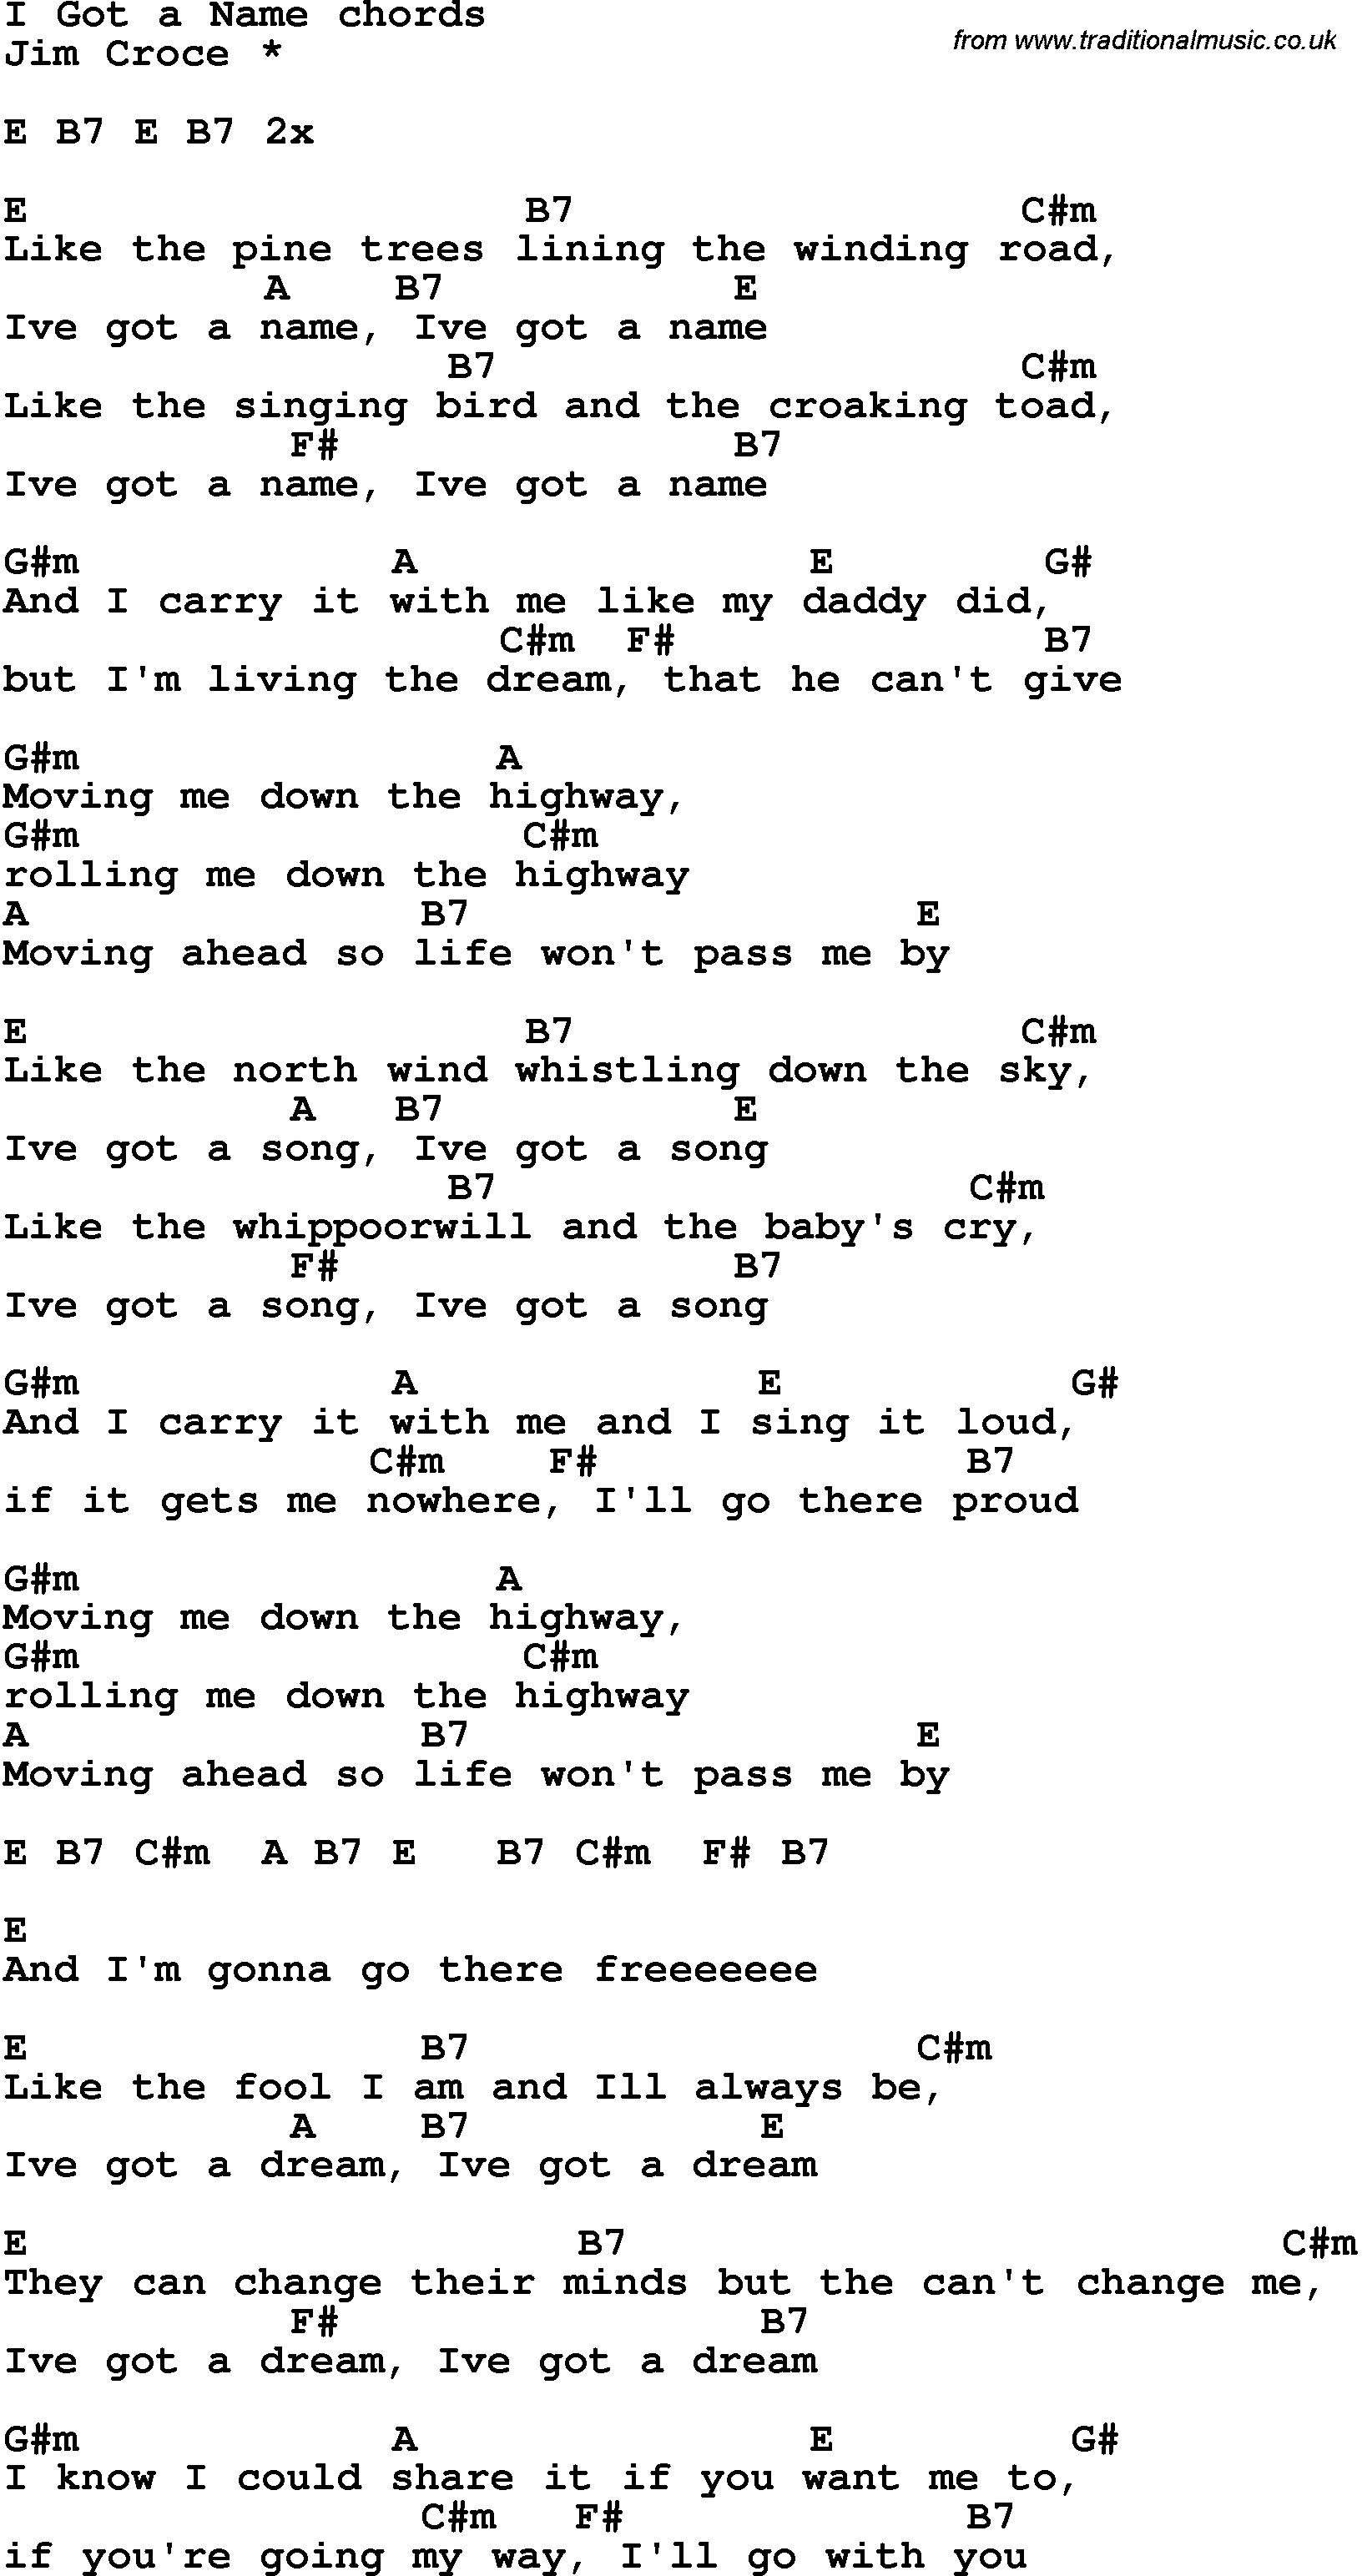 Song Lyrics With Guitar Chords For I Got A Name